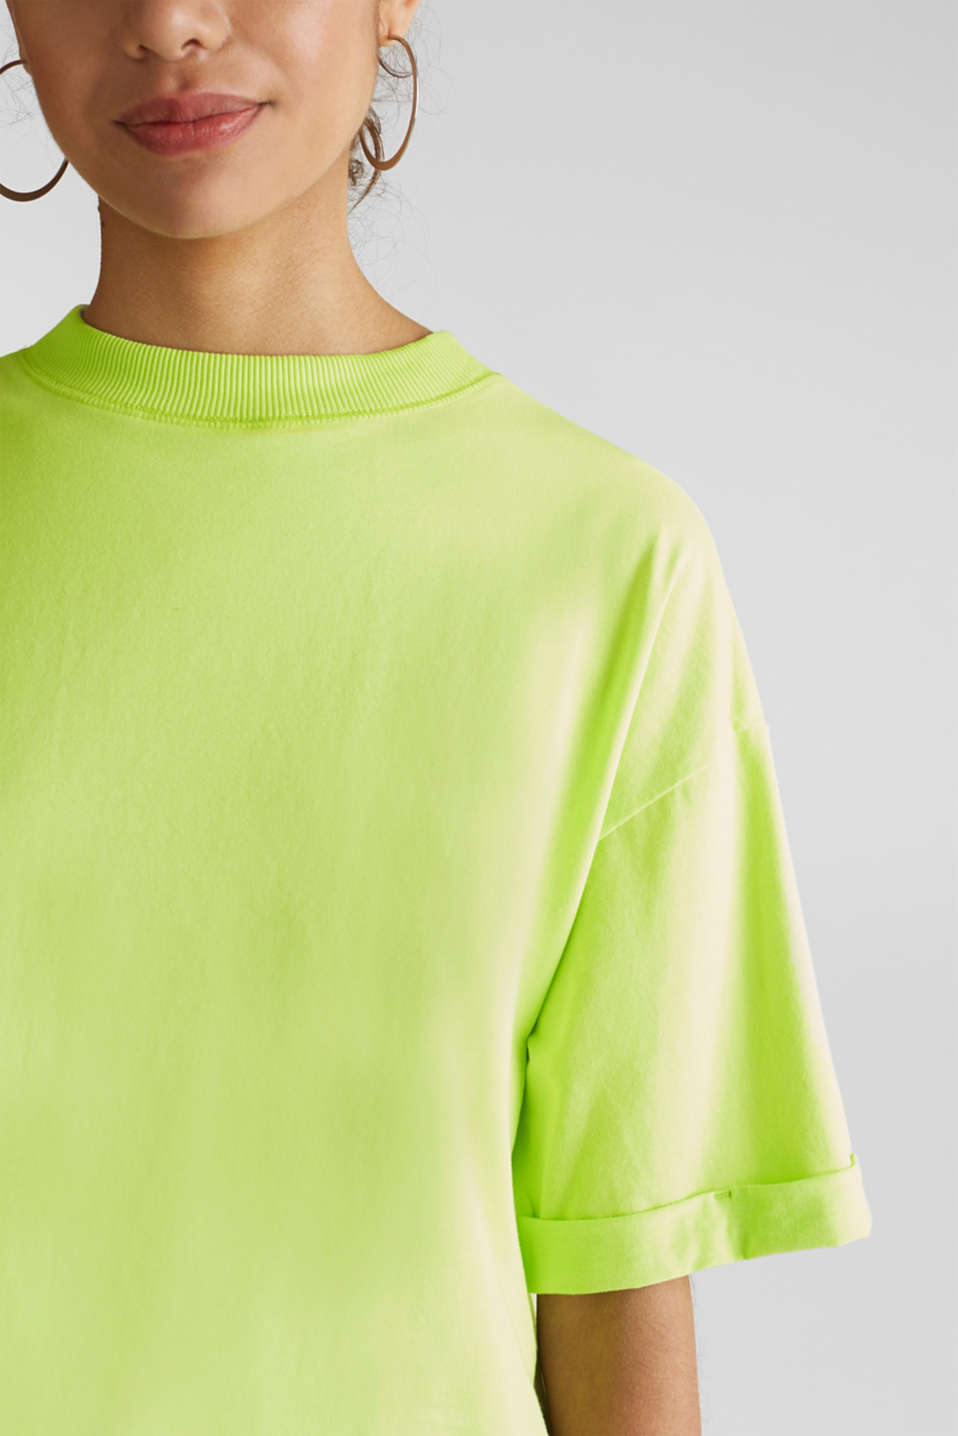 NEON top with wide sleeves, 100% cotton, LIME YELLOW, detail image number 2